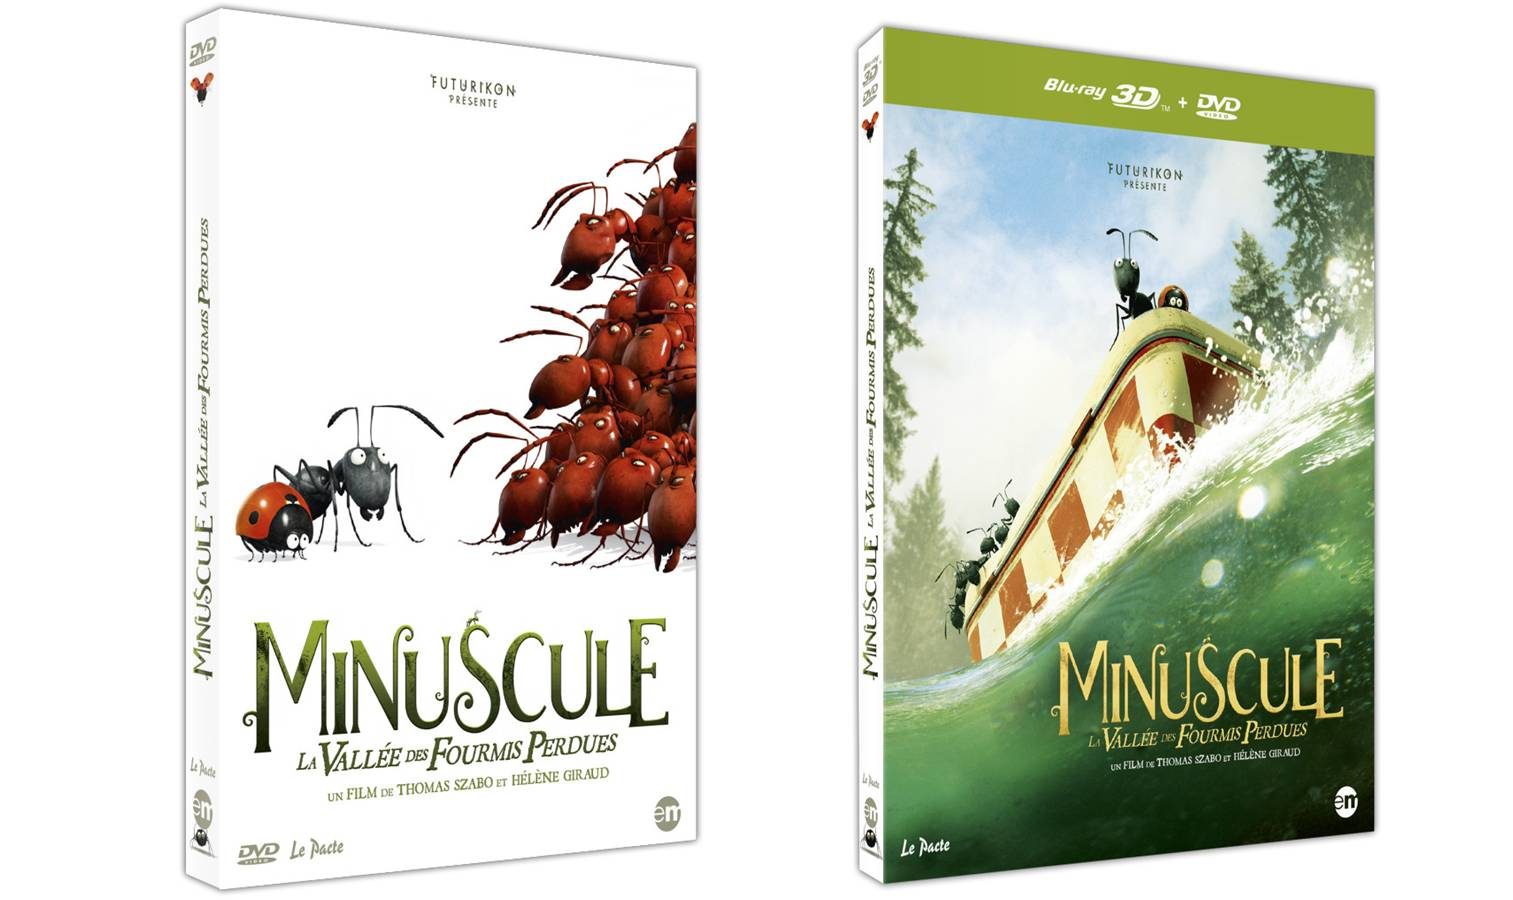 MINUSCULE - film animation en DVD Bluray fourmis éditions Montparnasse - Go with the Blog